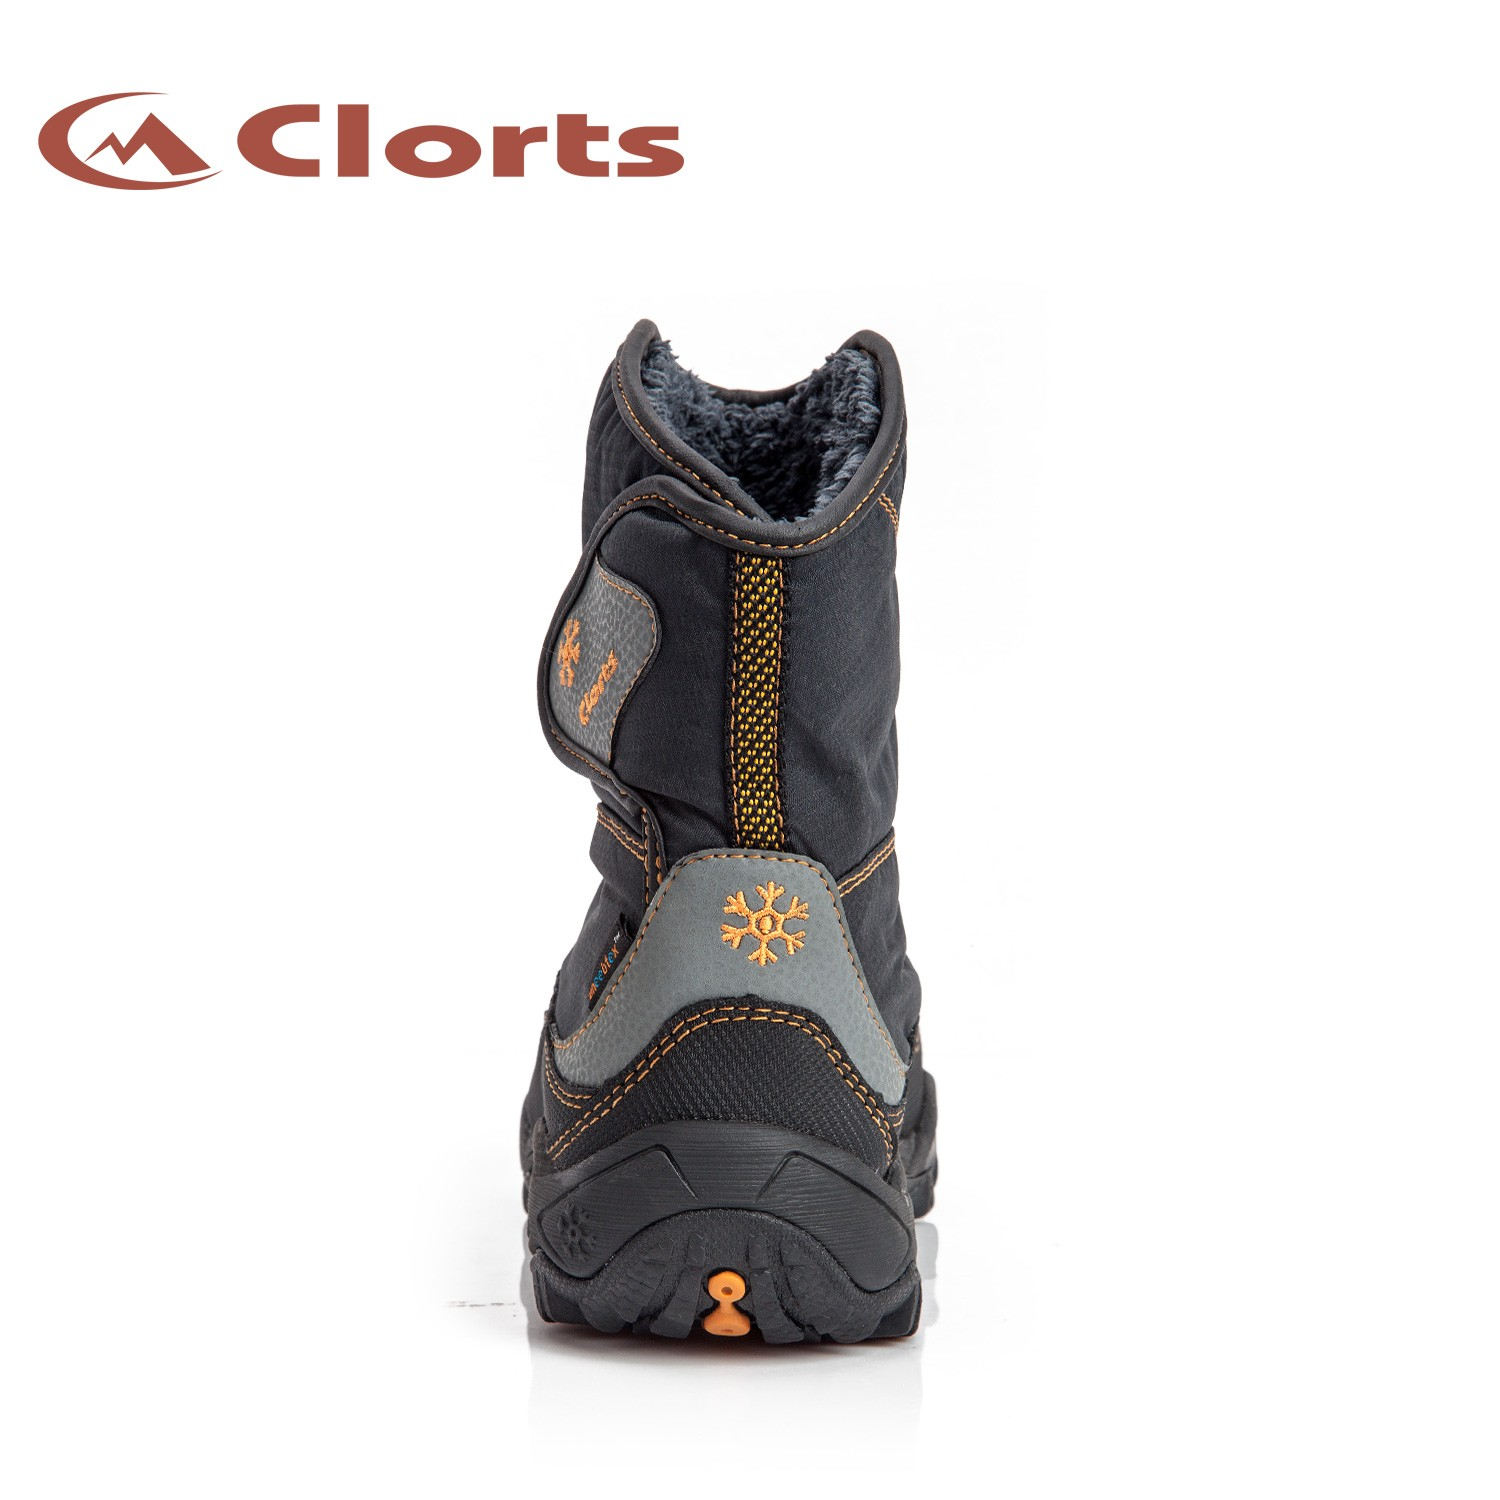 Winter Waterproof Snow Boots Manufacturers, Winter Waterproof Snow Boots Factory, Supply Winter Waterproof Snow Boots